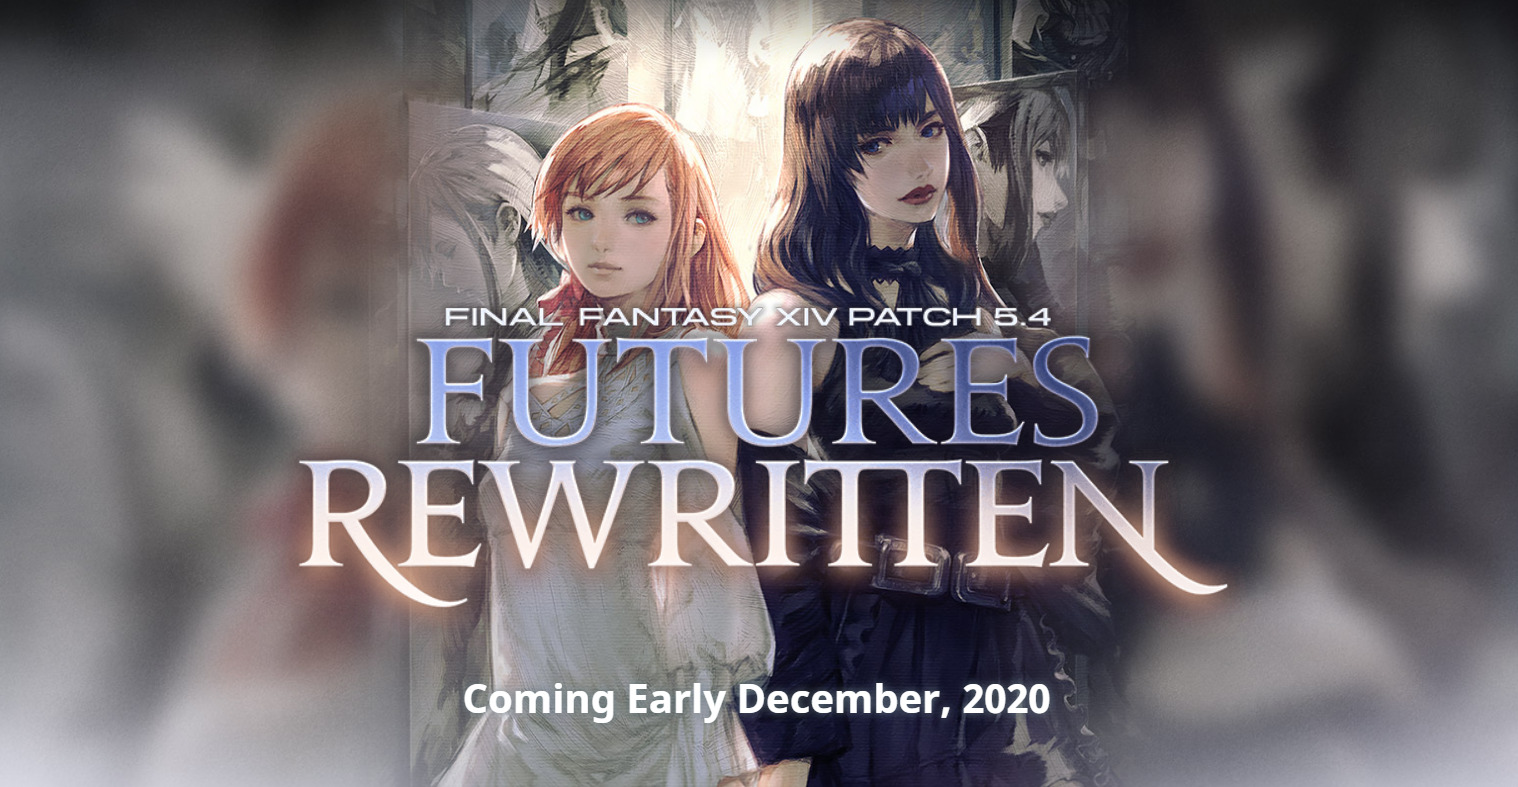 The Next Final Fantasy 14 Patch, Coming In Early December, Will Be Entitled Futures Rewritten